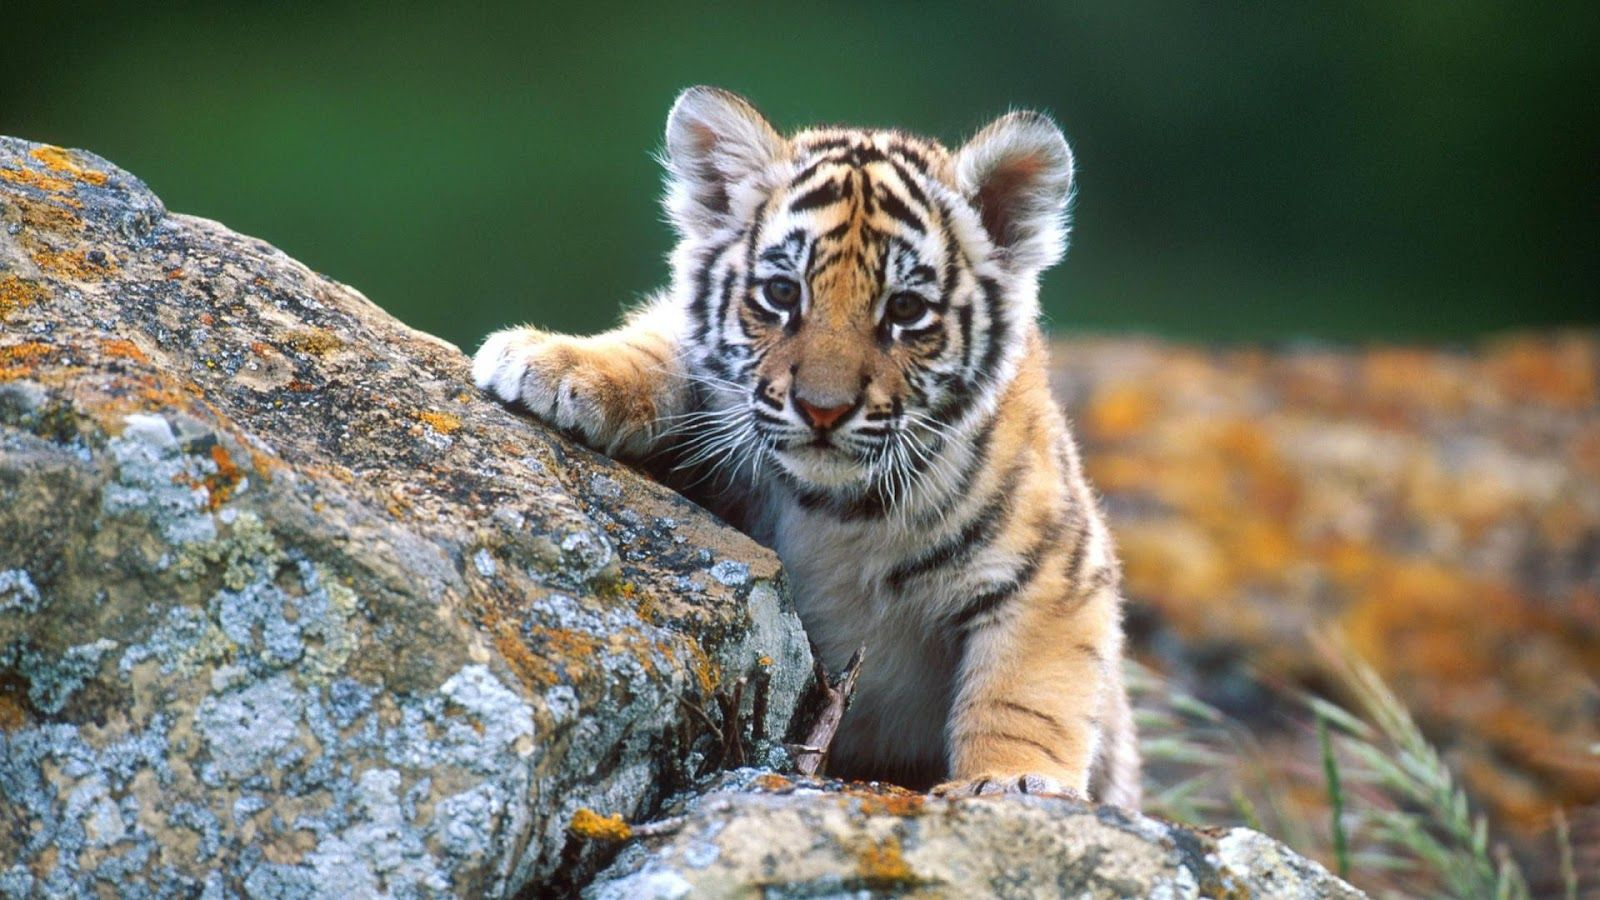 Baby Animal HD Wallpaper Baby Animal Pictures New